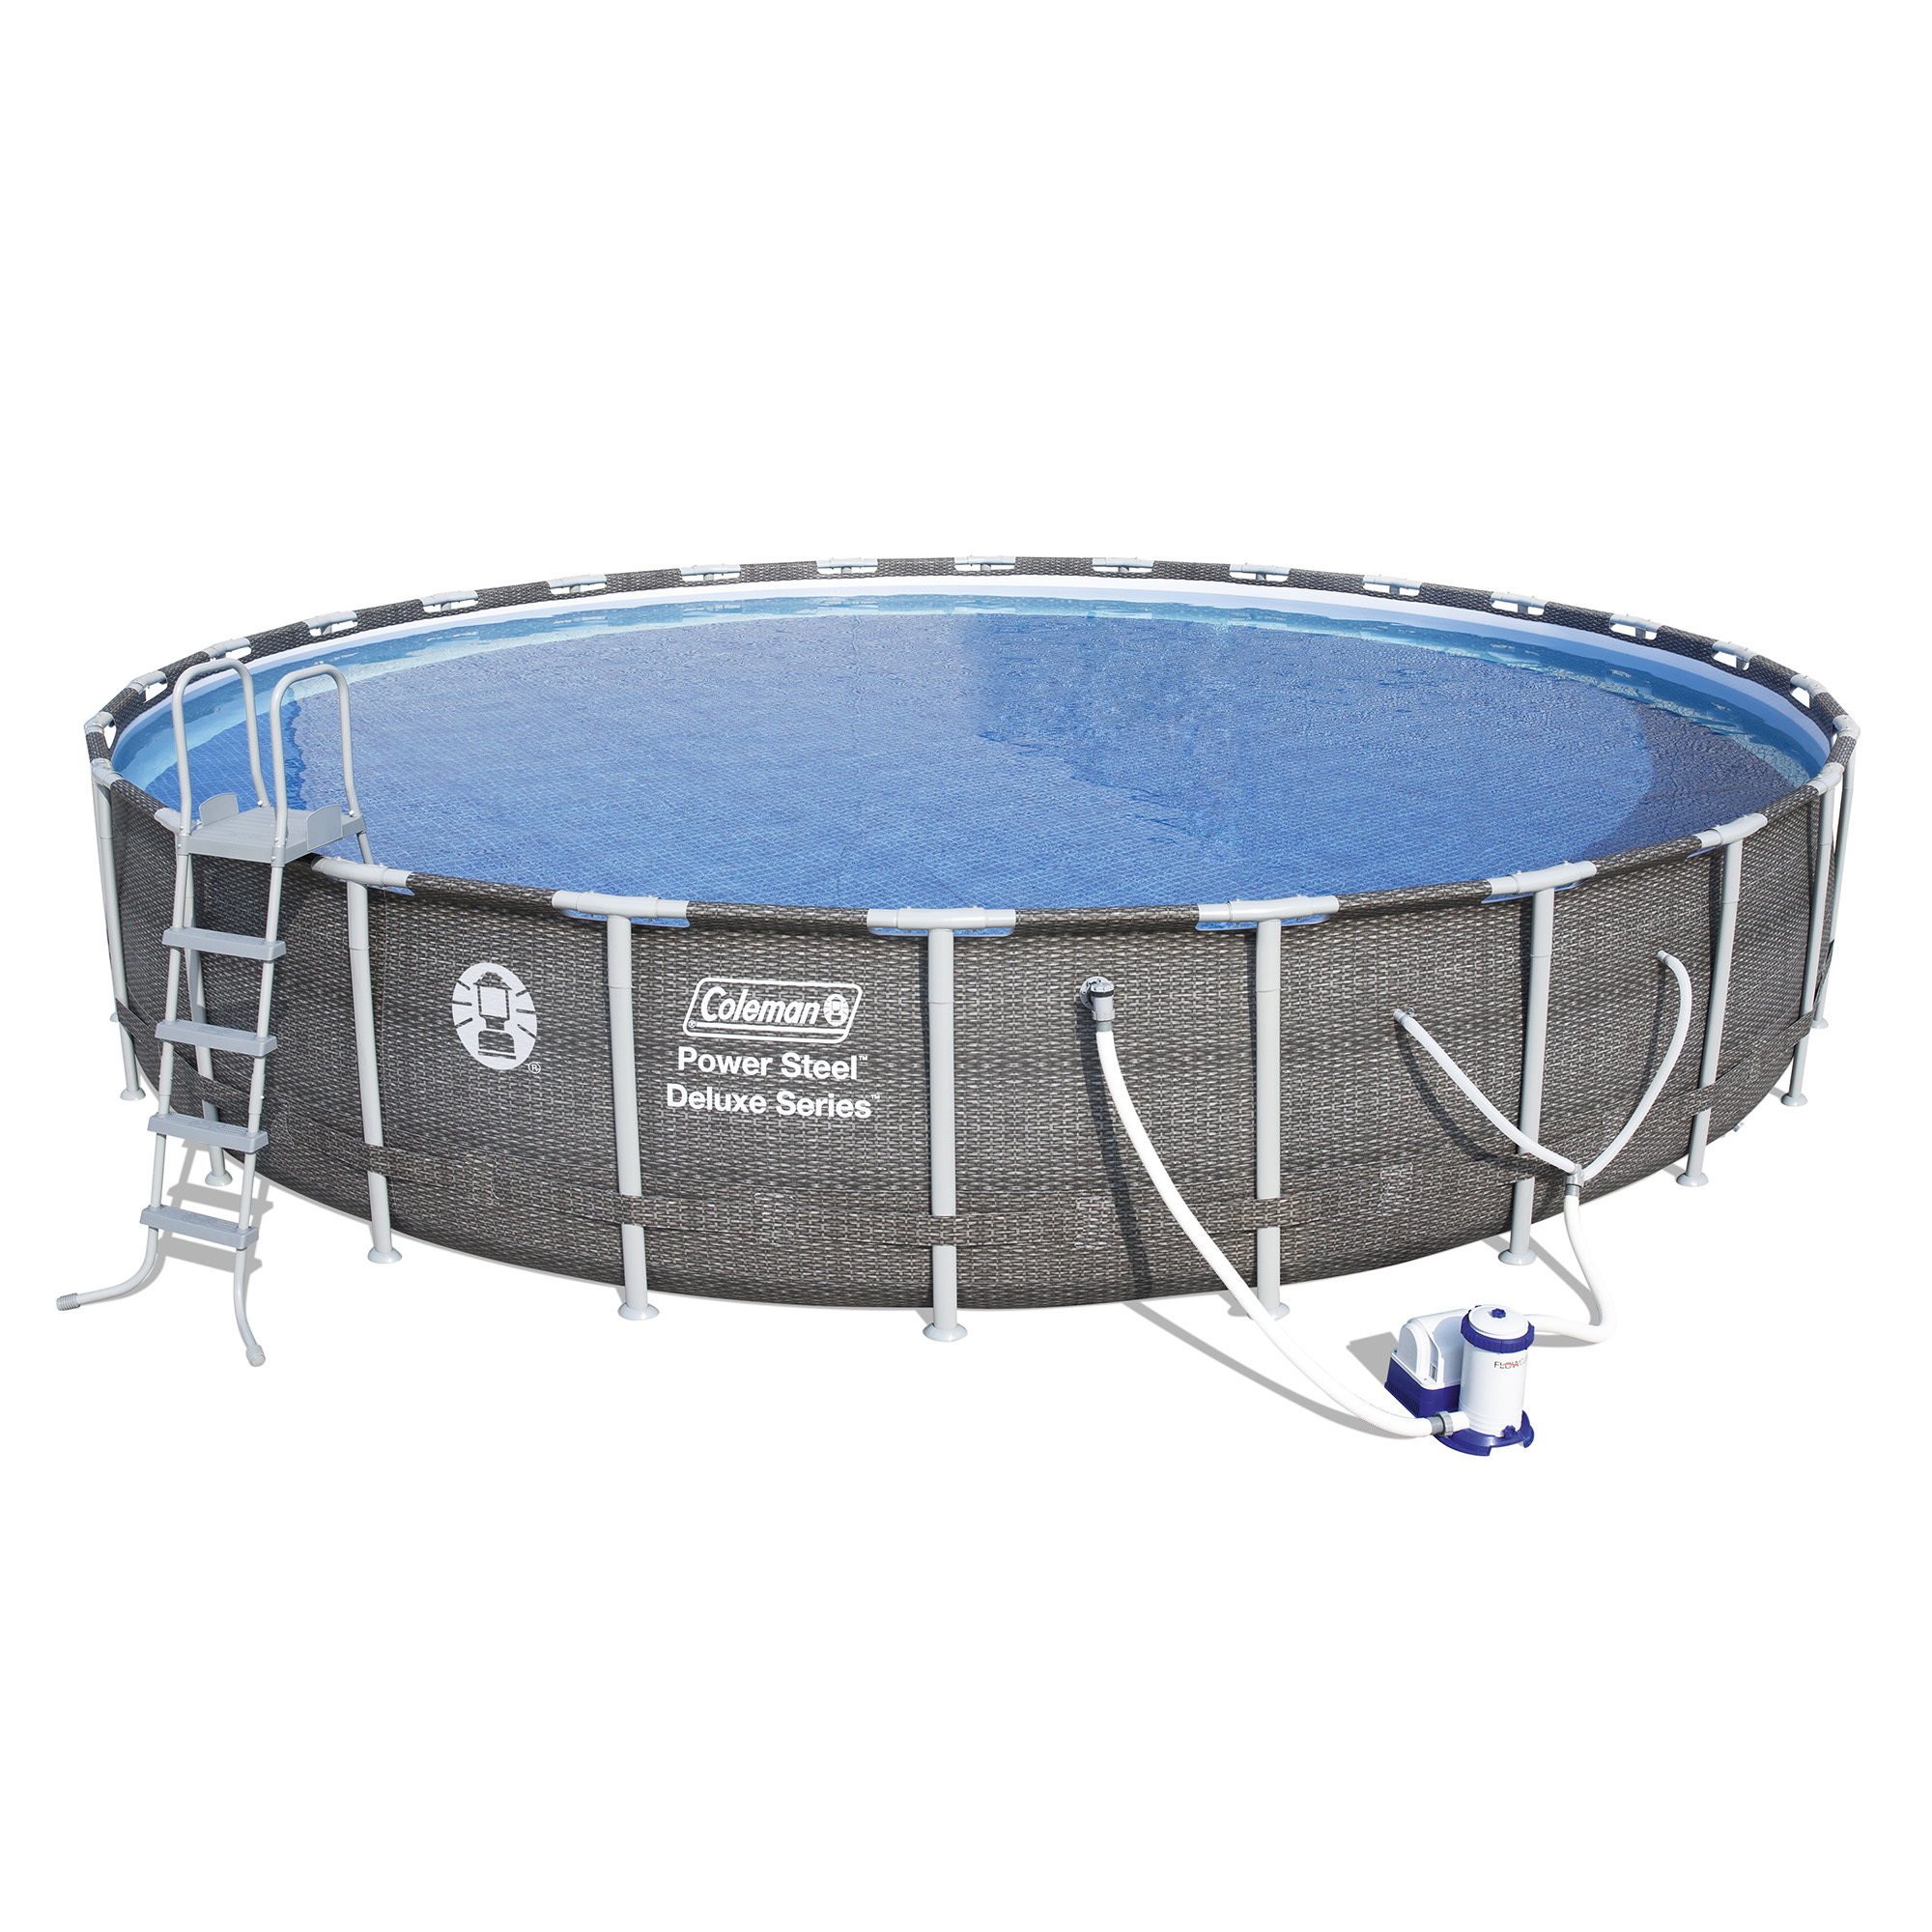 Aldi Intex Pool Intex Pools Accessories Walmart